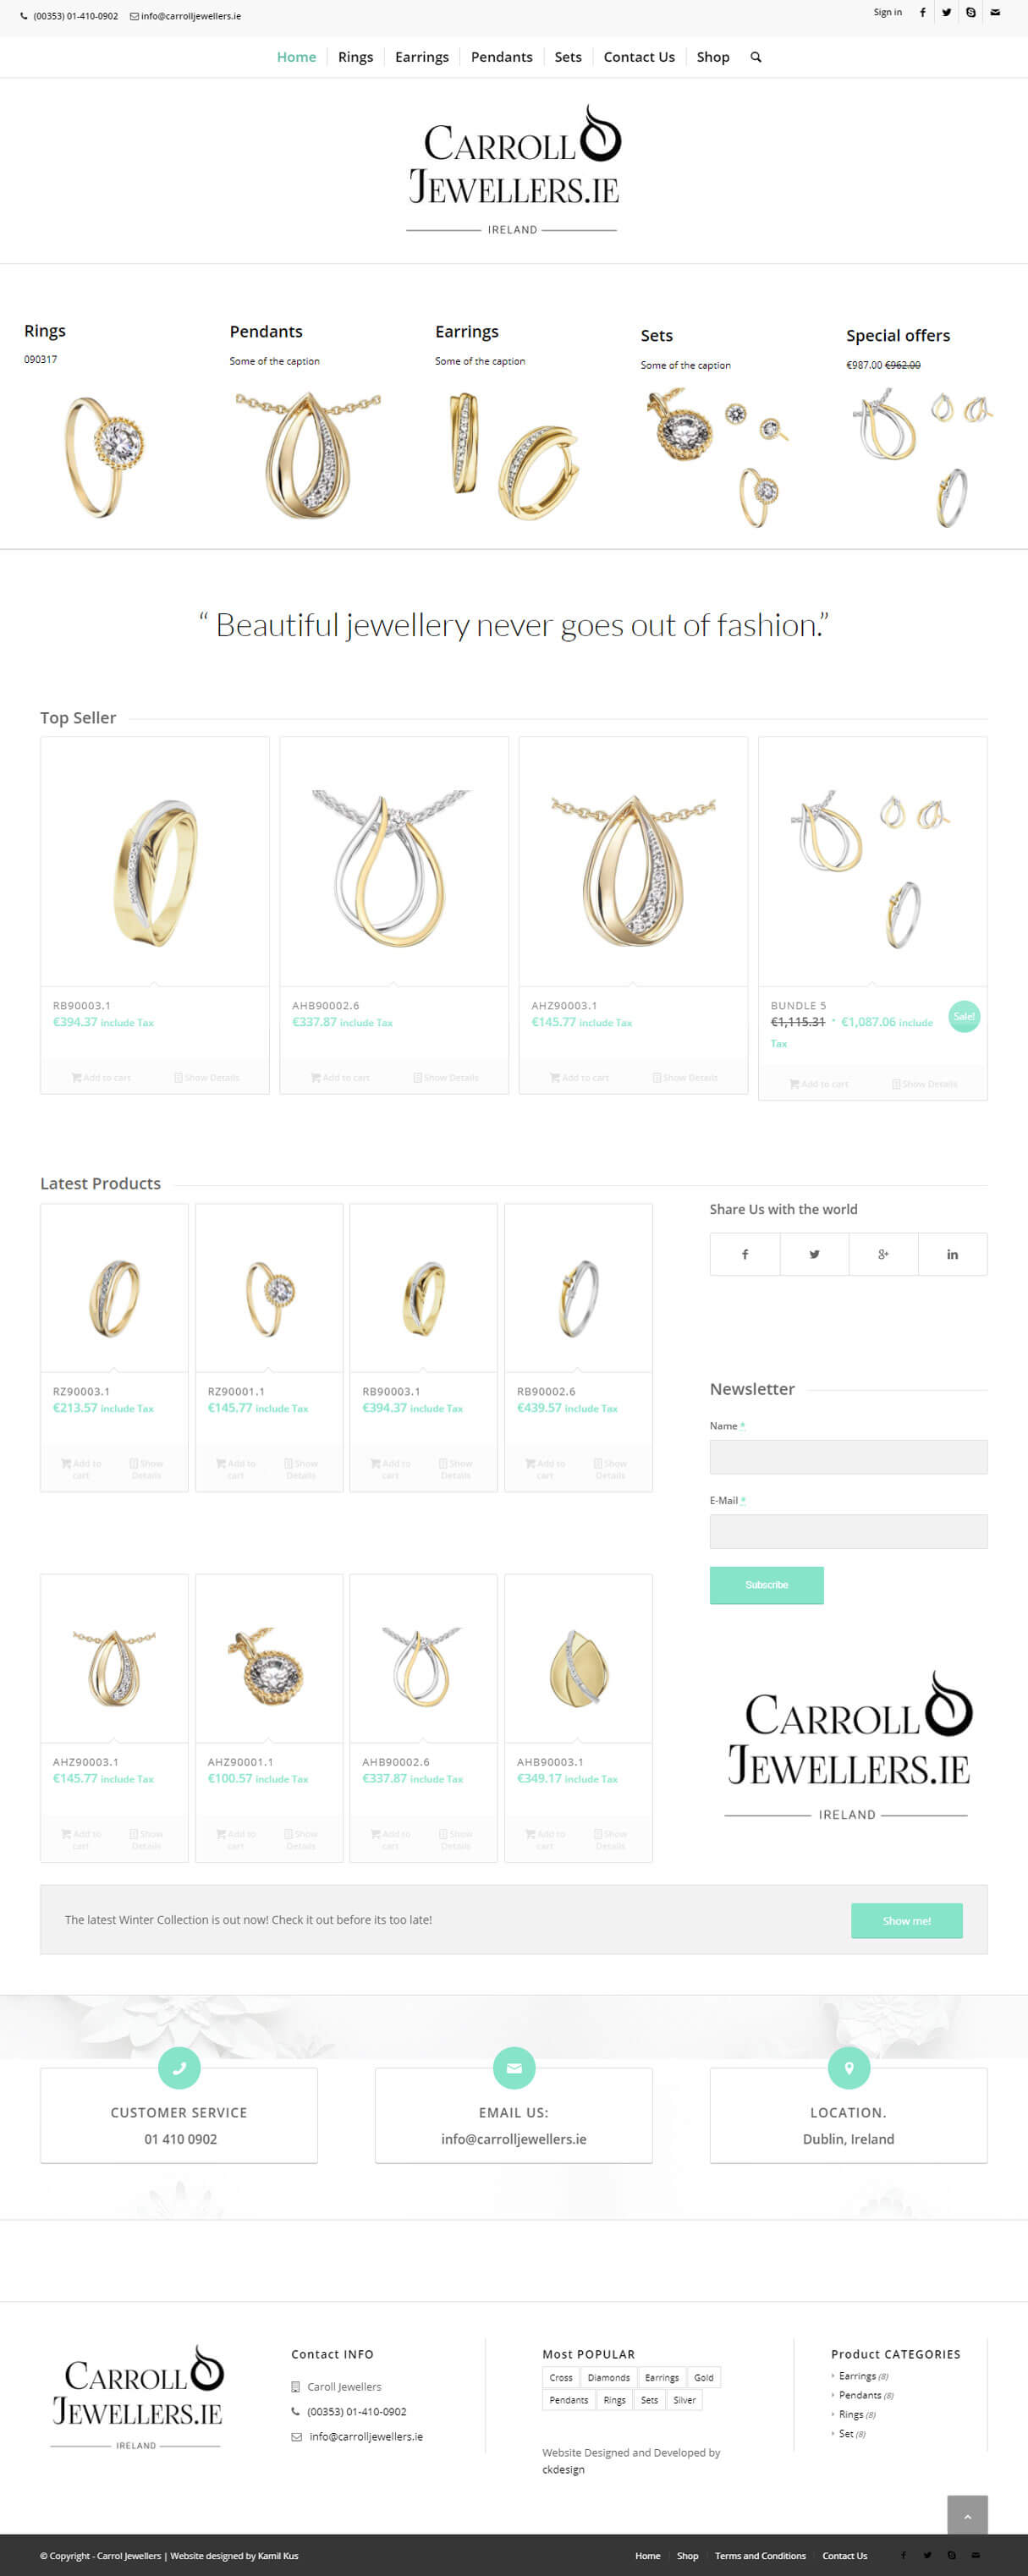 carroll Jewellers website screenshot